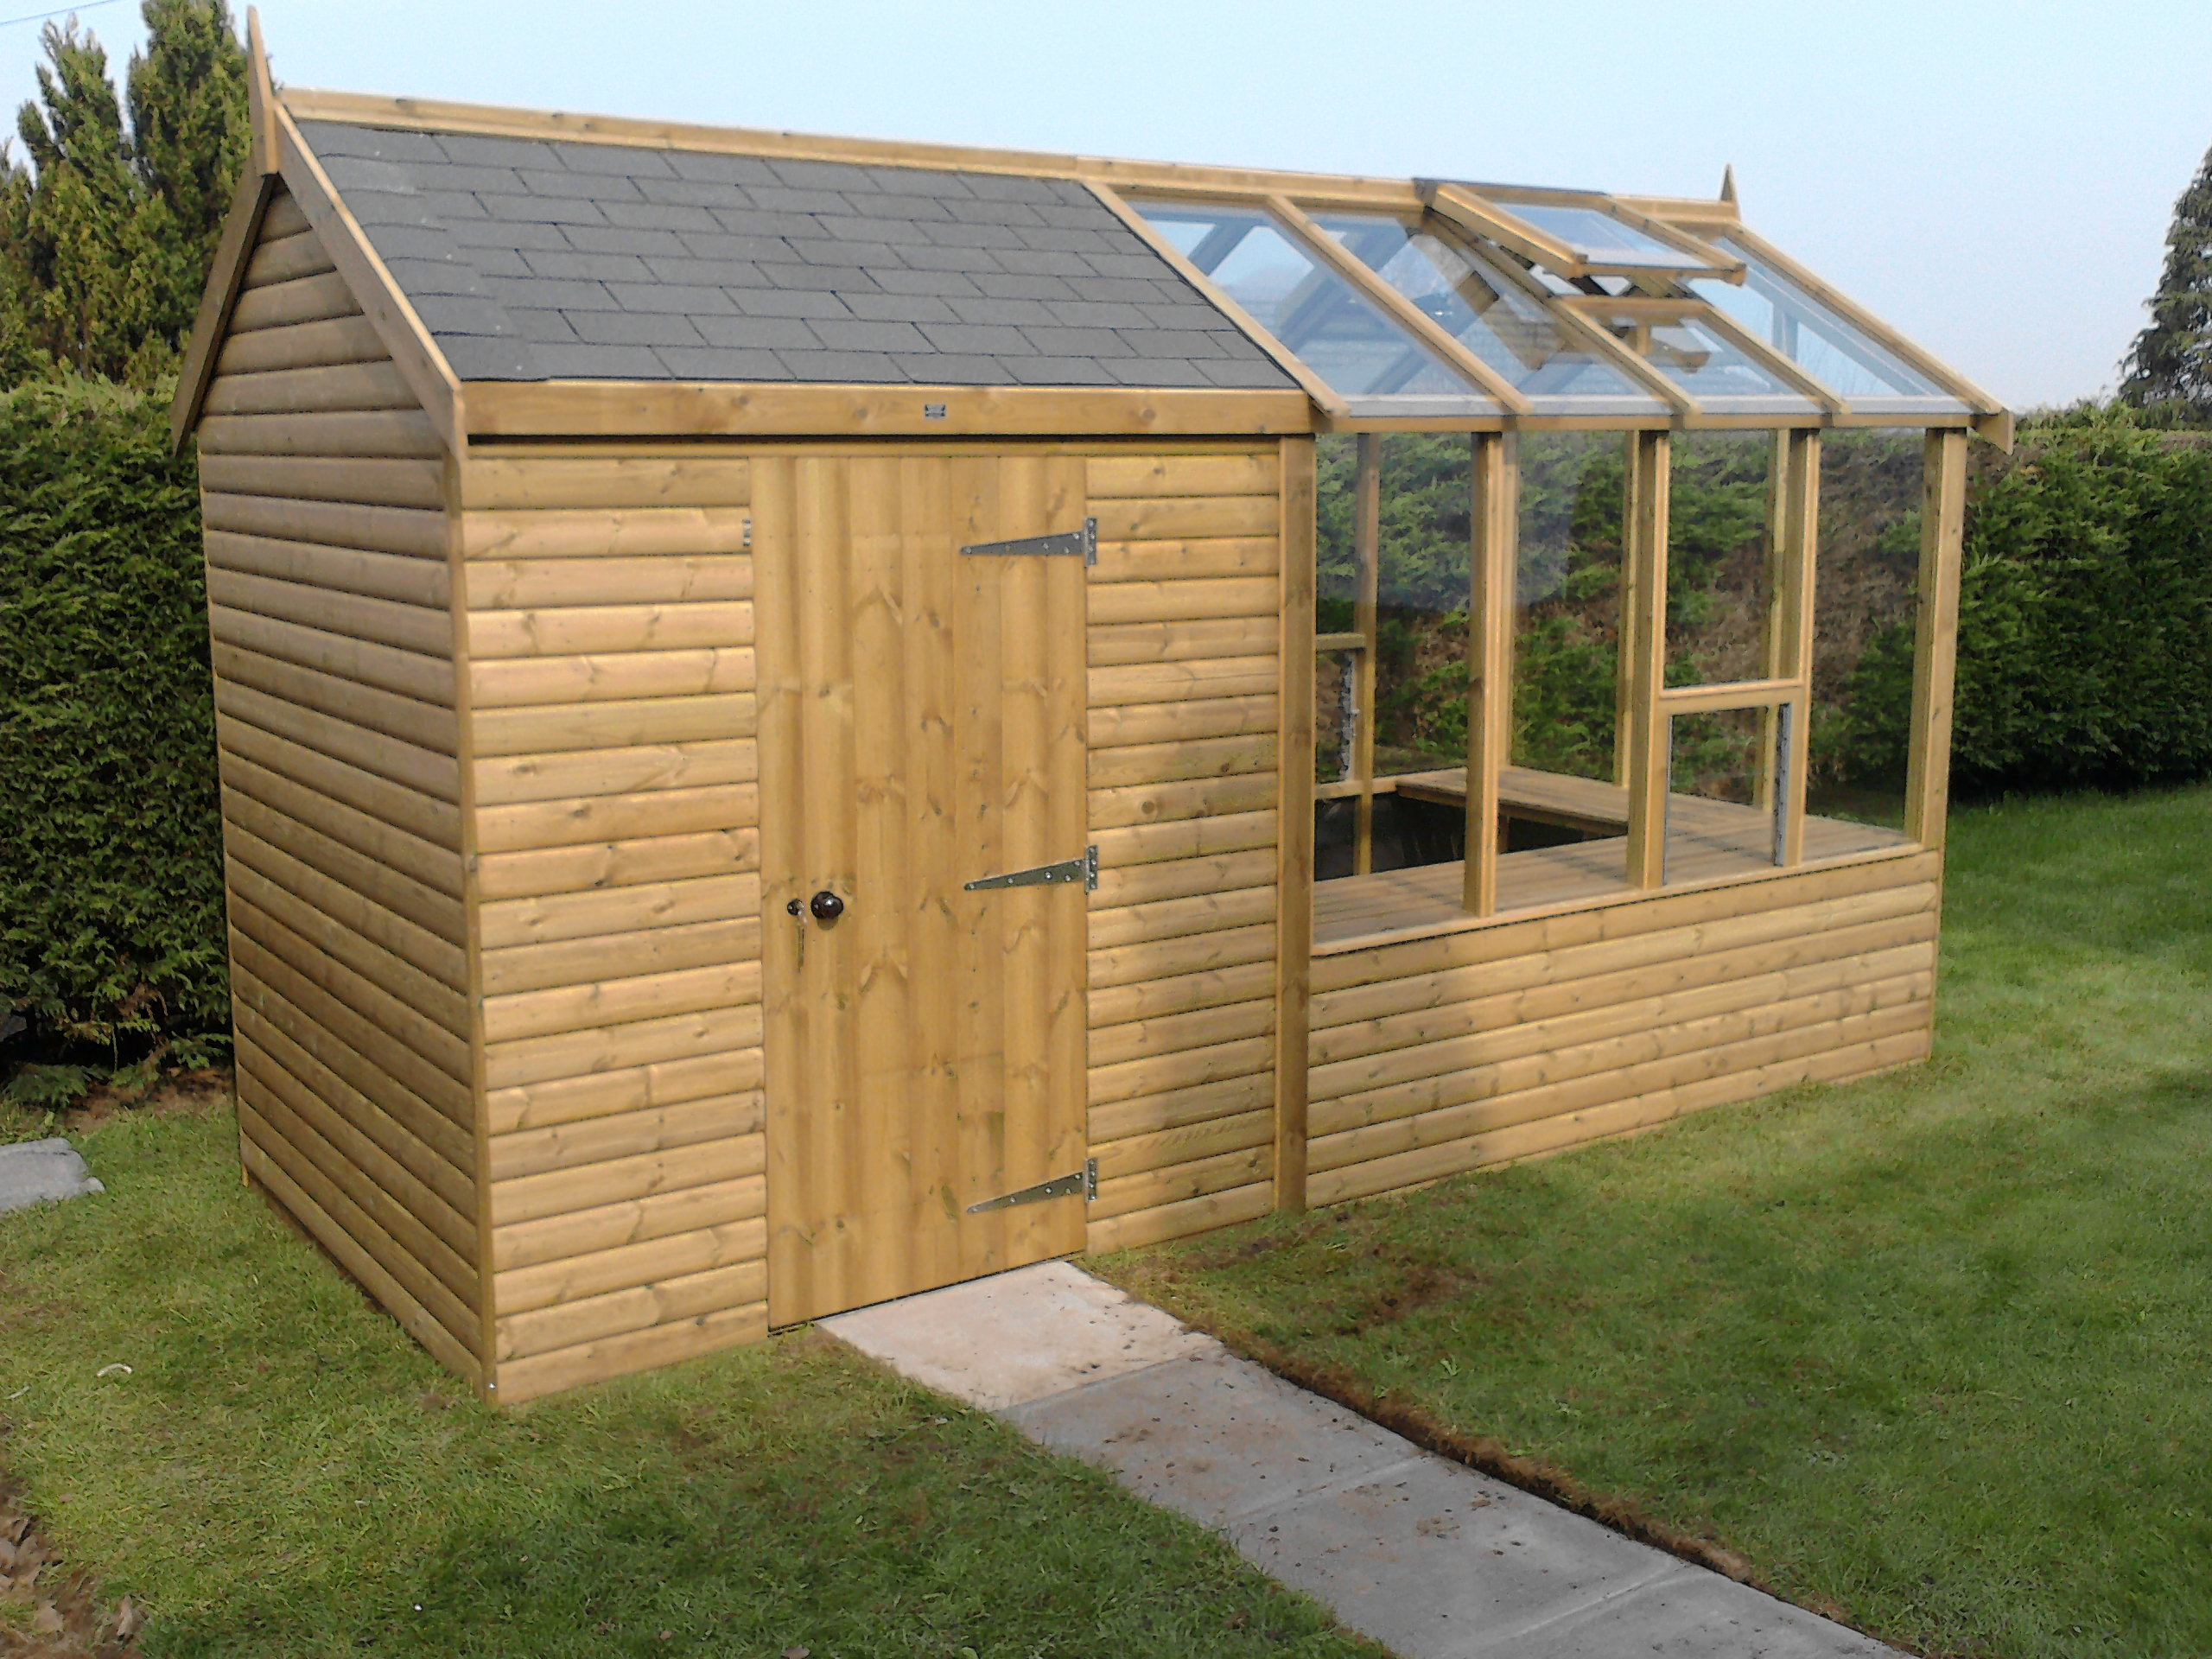 Greenhouse garden shed locating free shed plans on the Barn plans and outbuildings